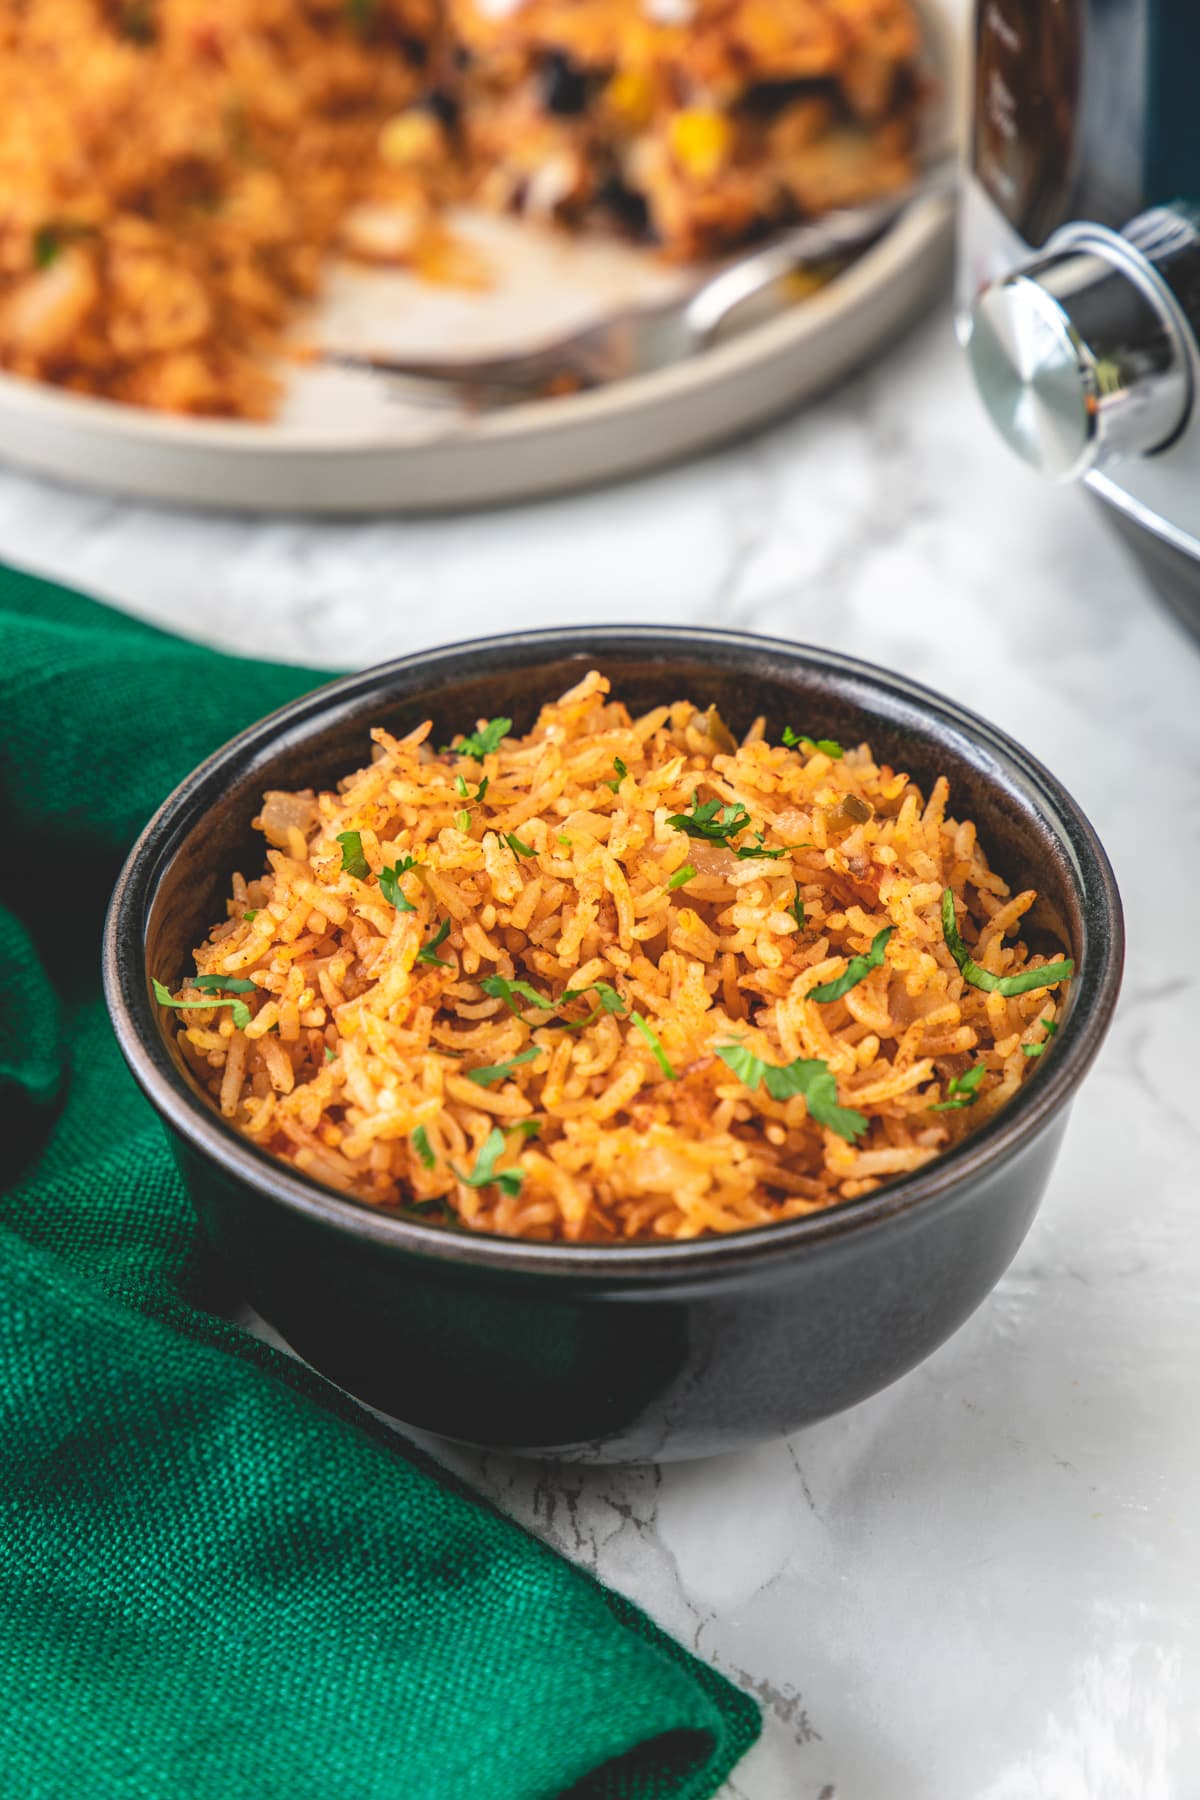 Mexican rice in a black bowl with green napkin on left and instant pot on right side.